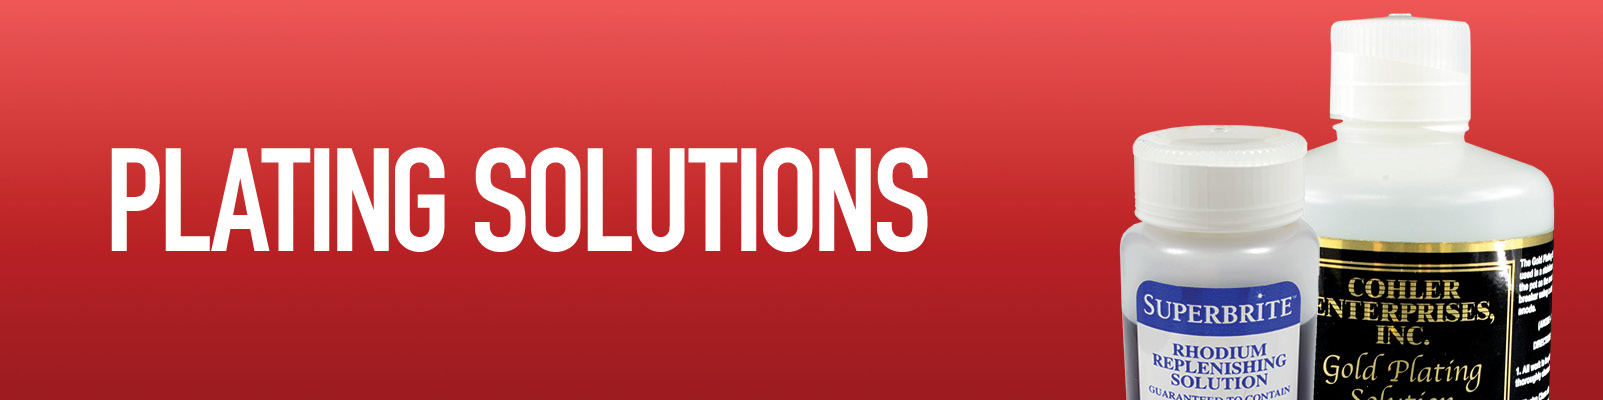 Plating Solutions